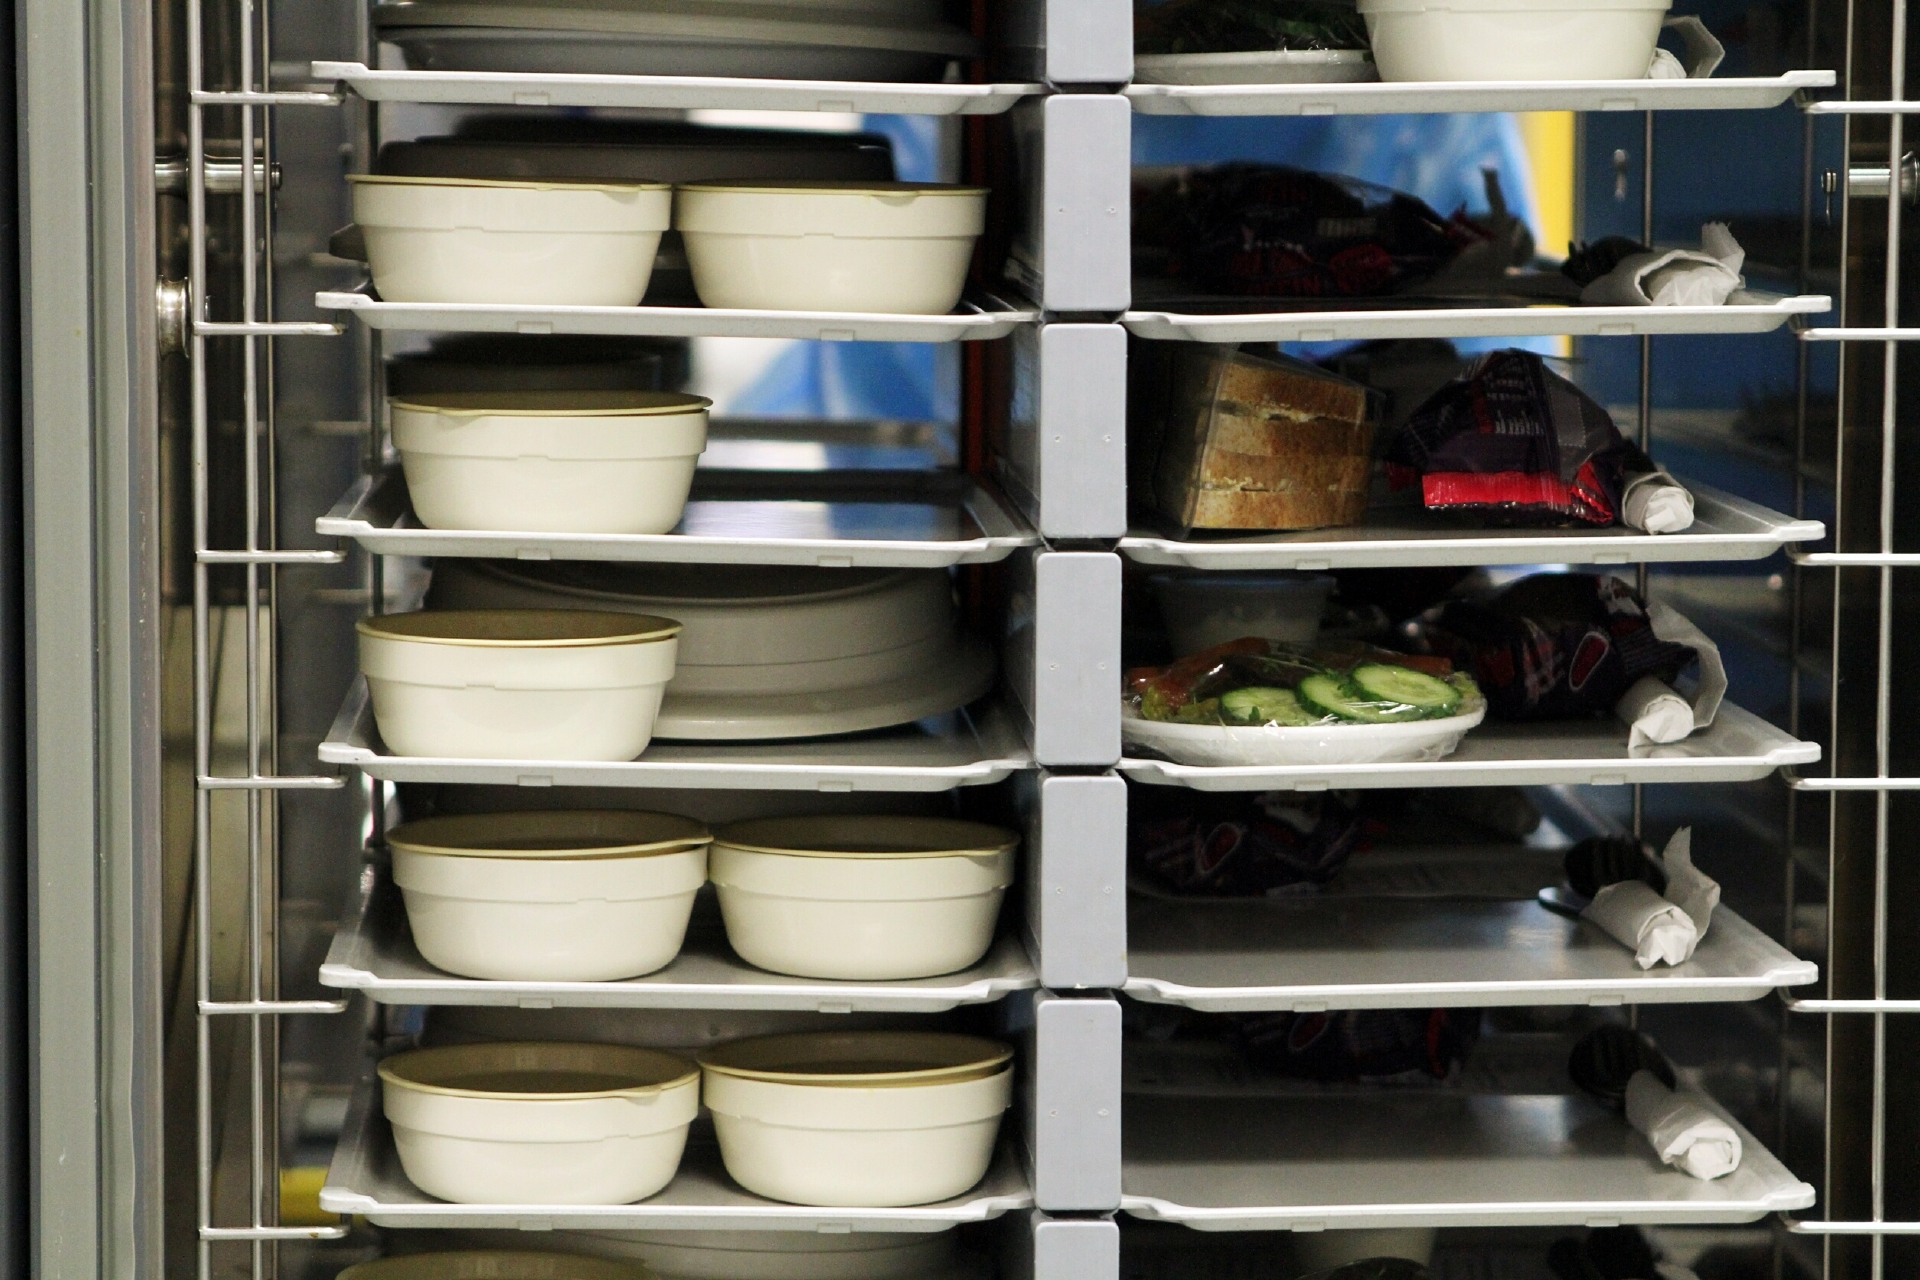 NHS Tayside meals are either served in bulk at ward level or centrally pre-plated